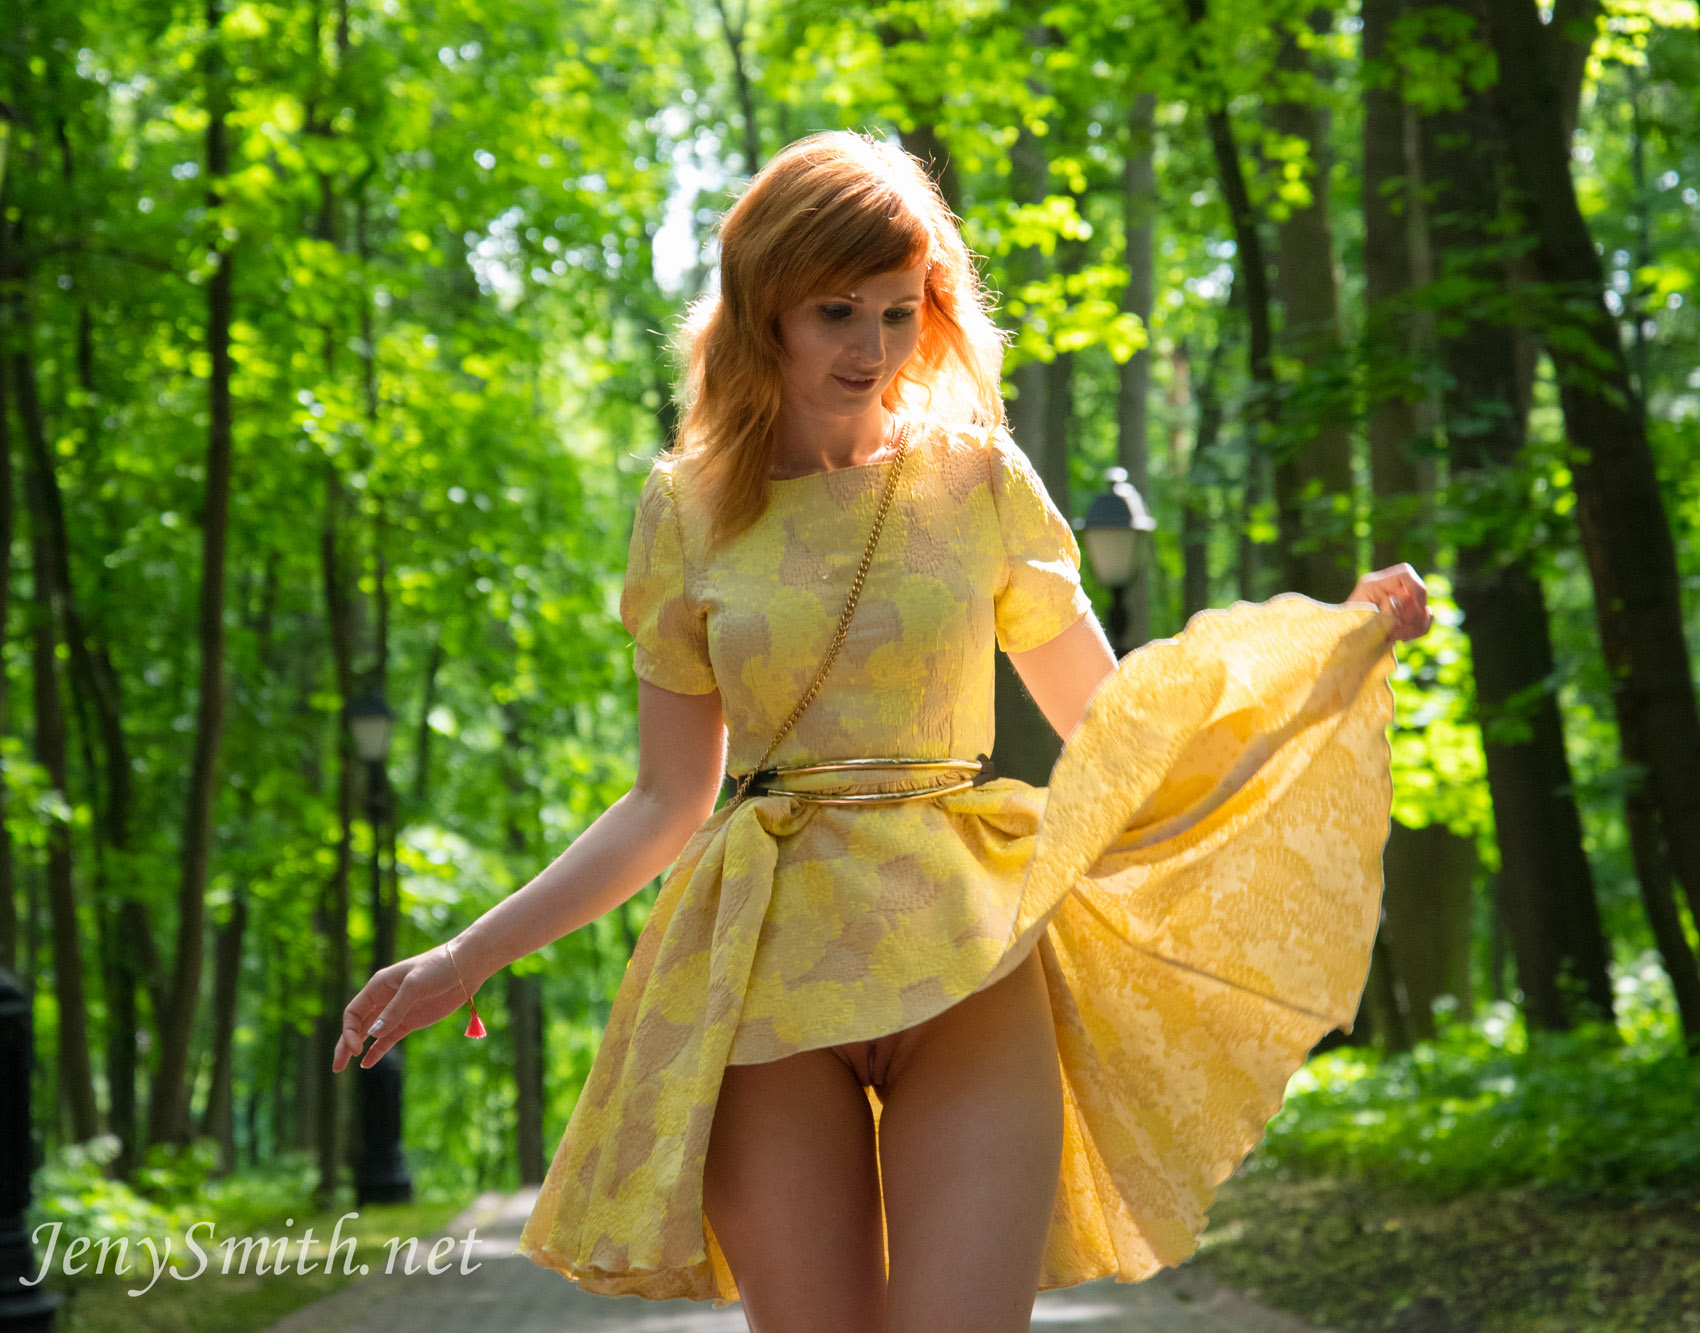 jeny-smith-yellow-dress_07